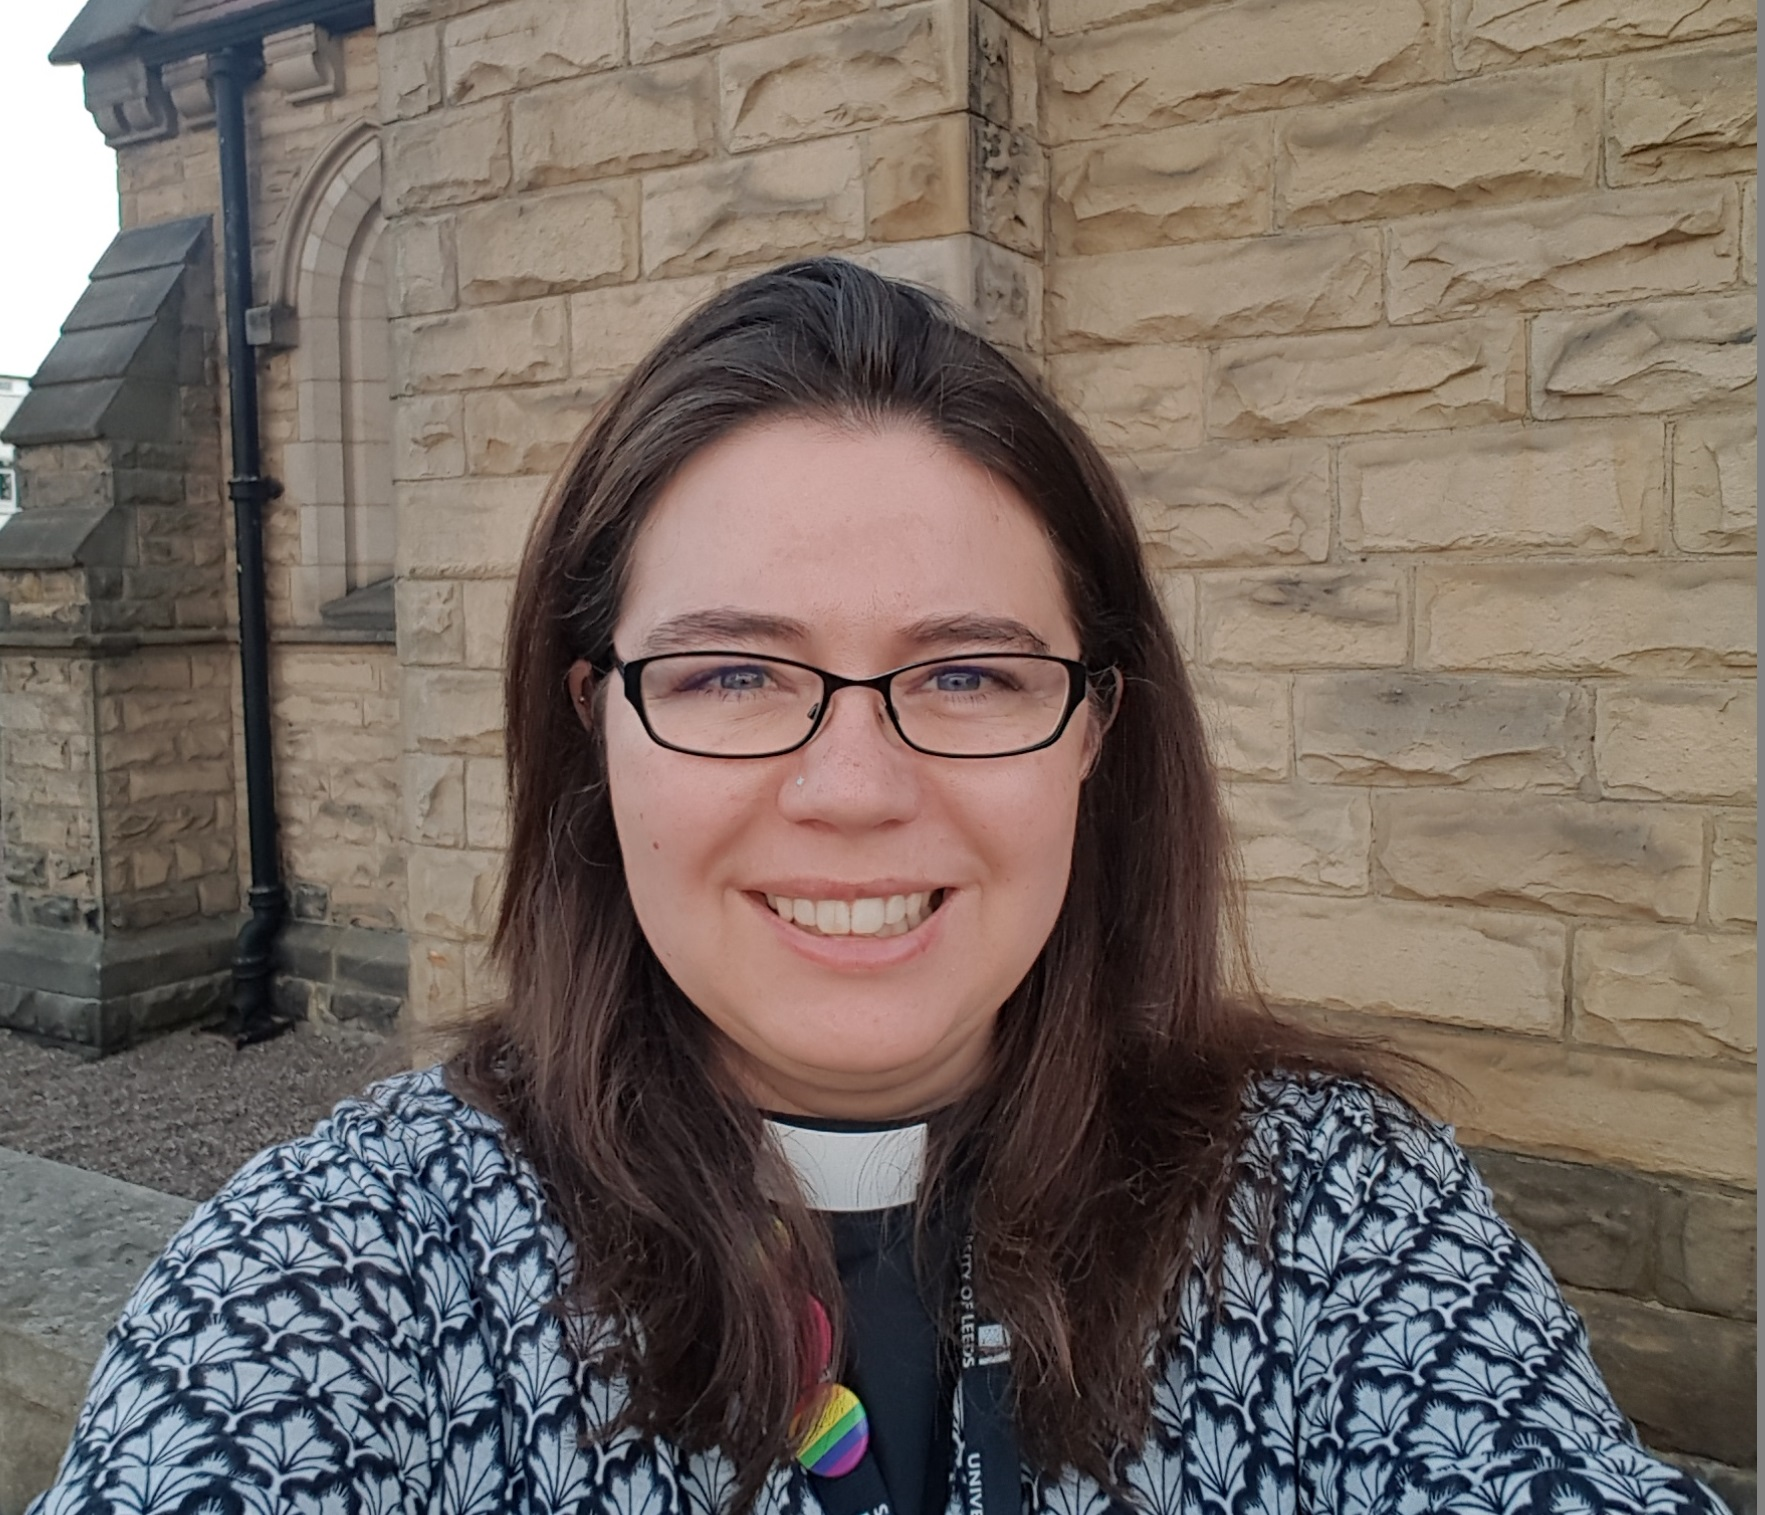 Rev Anthea Colledge